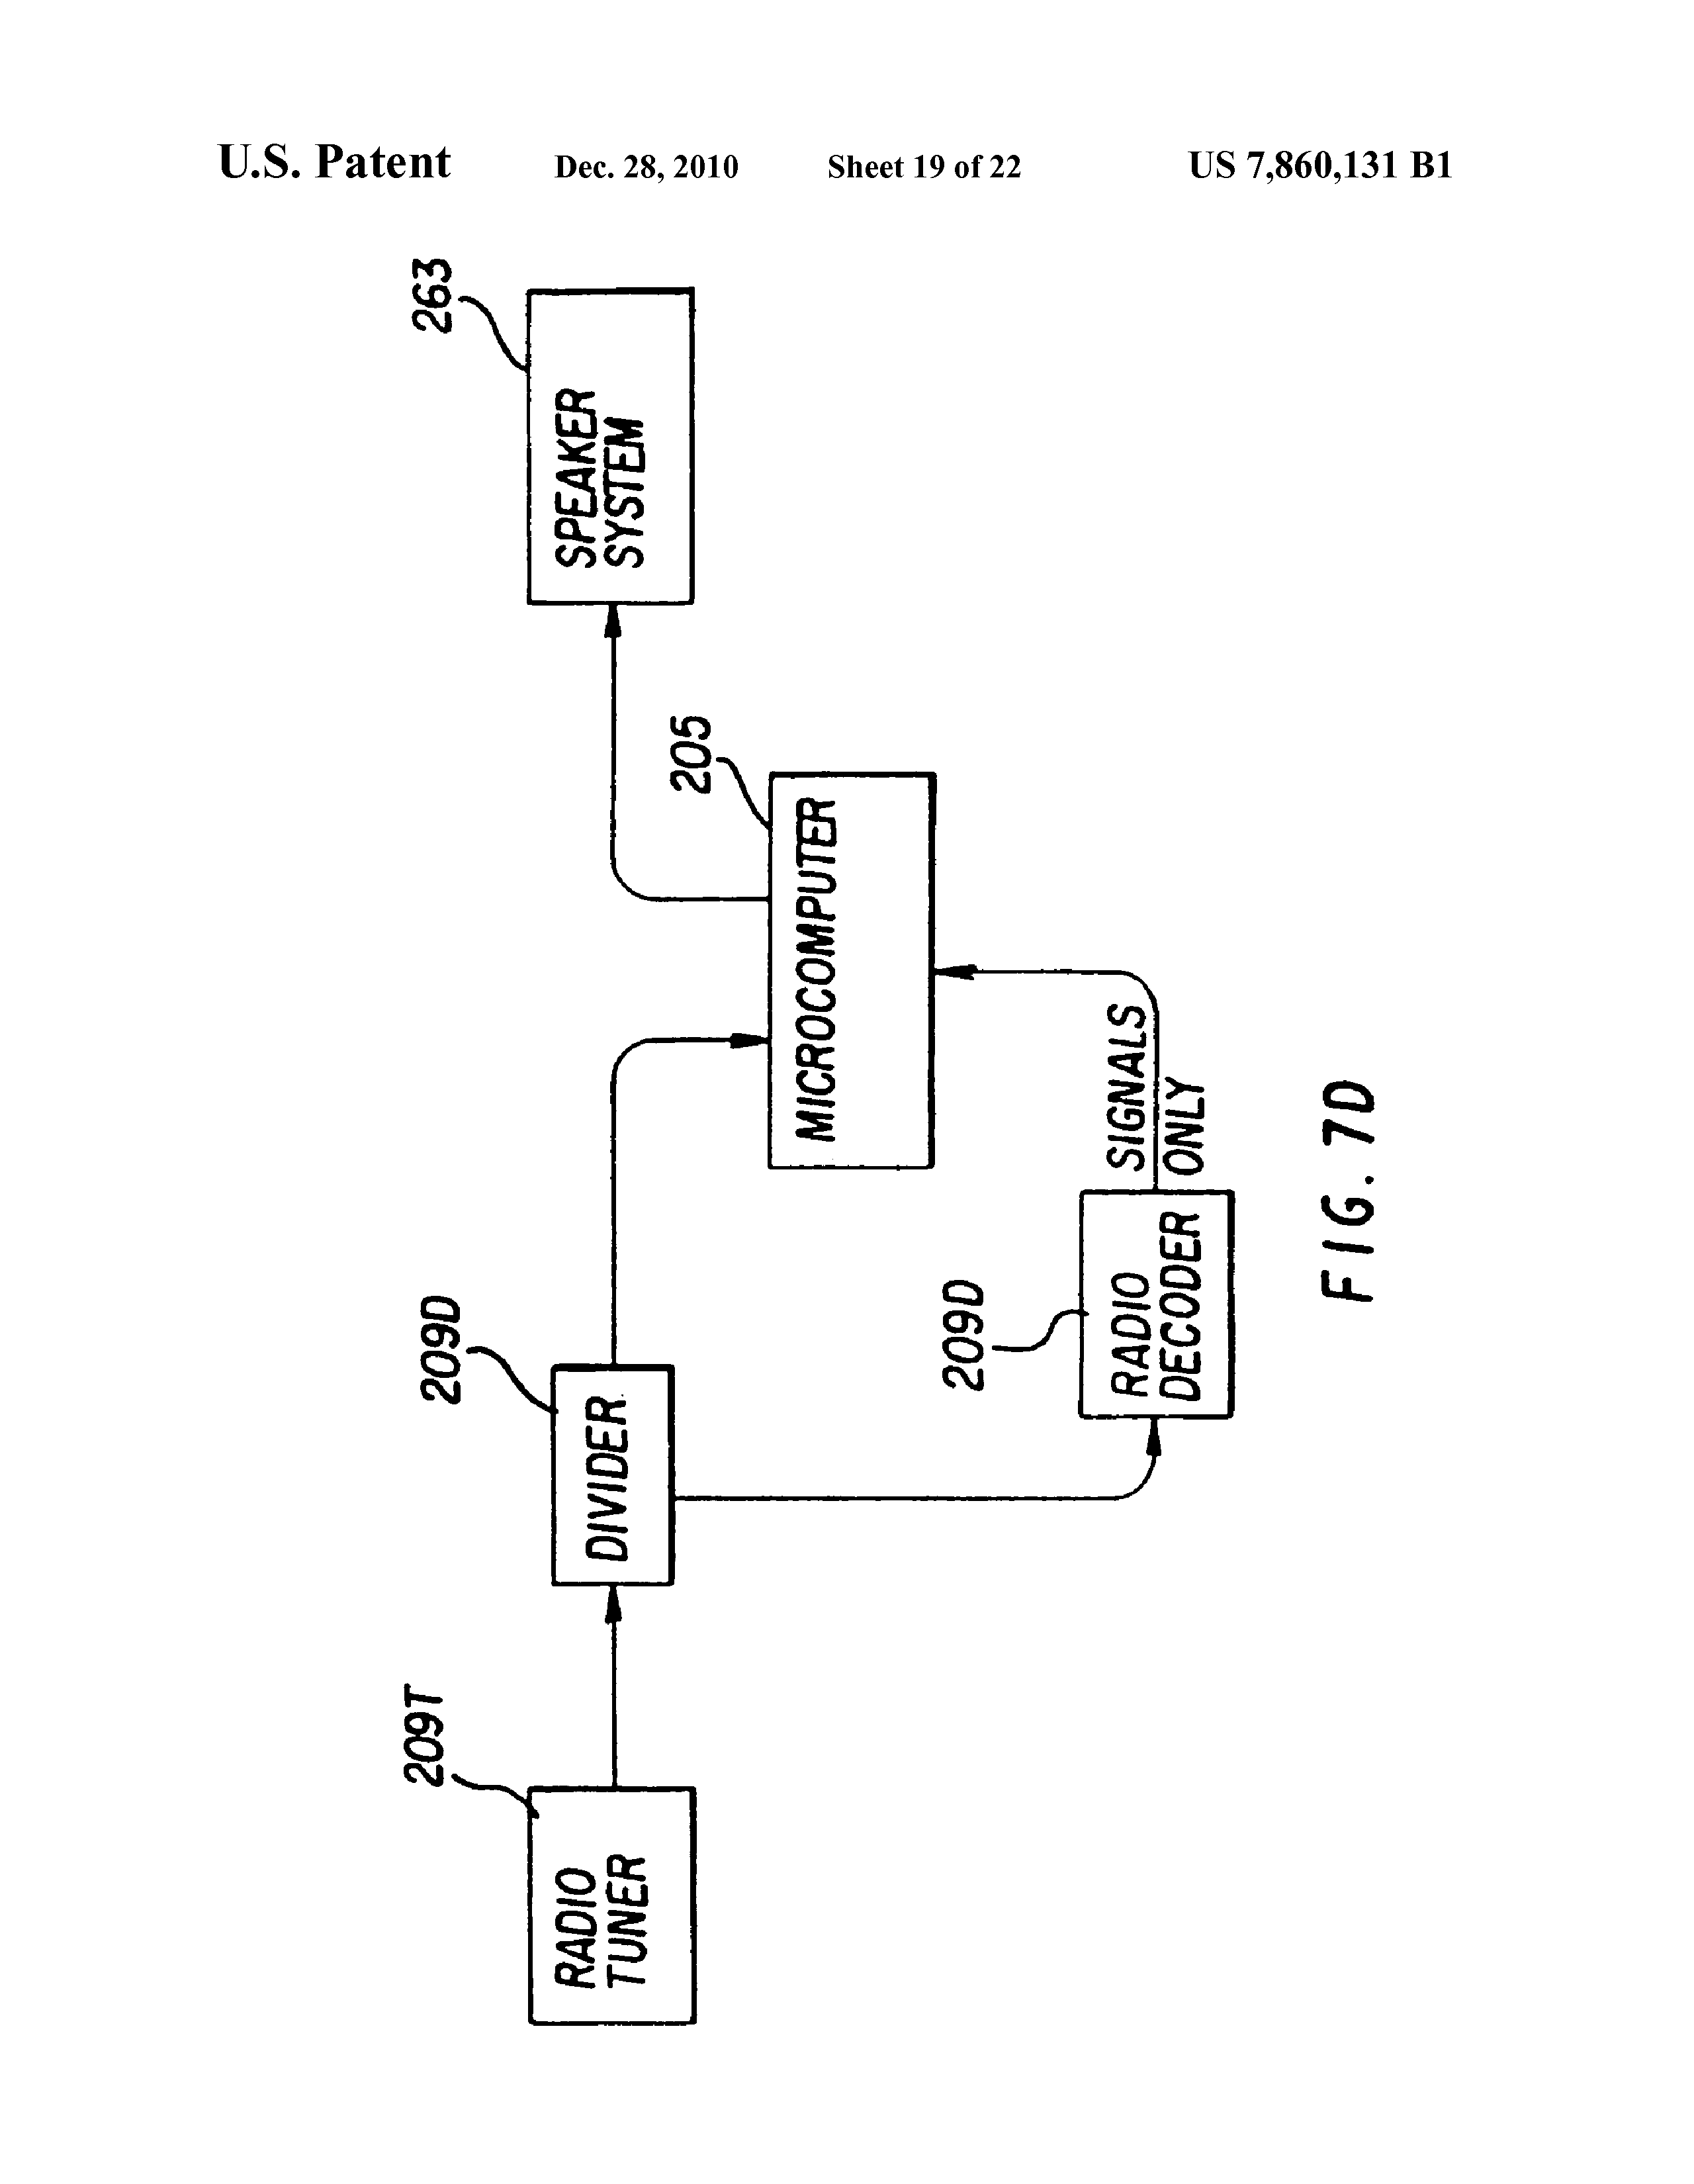 us7860131b1 signal processing apparatus and methods google patentsCharging Circuit Diagram For The 1947 51 Frazer All Models #17